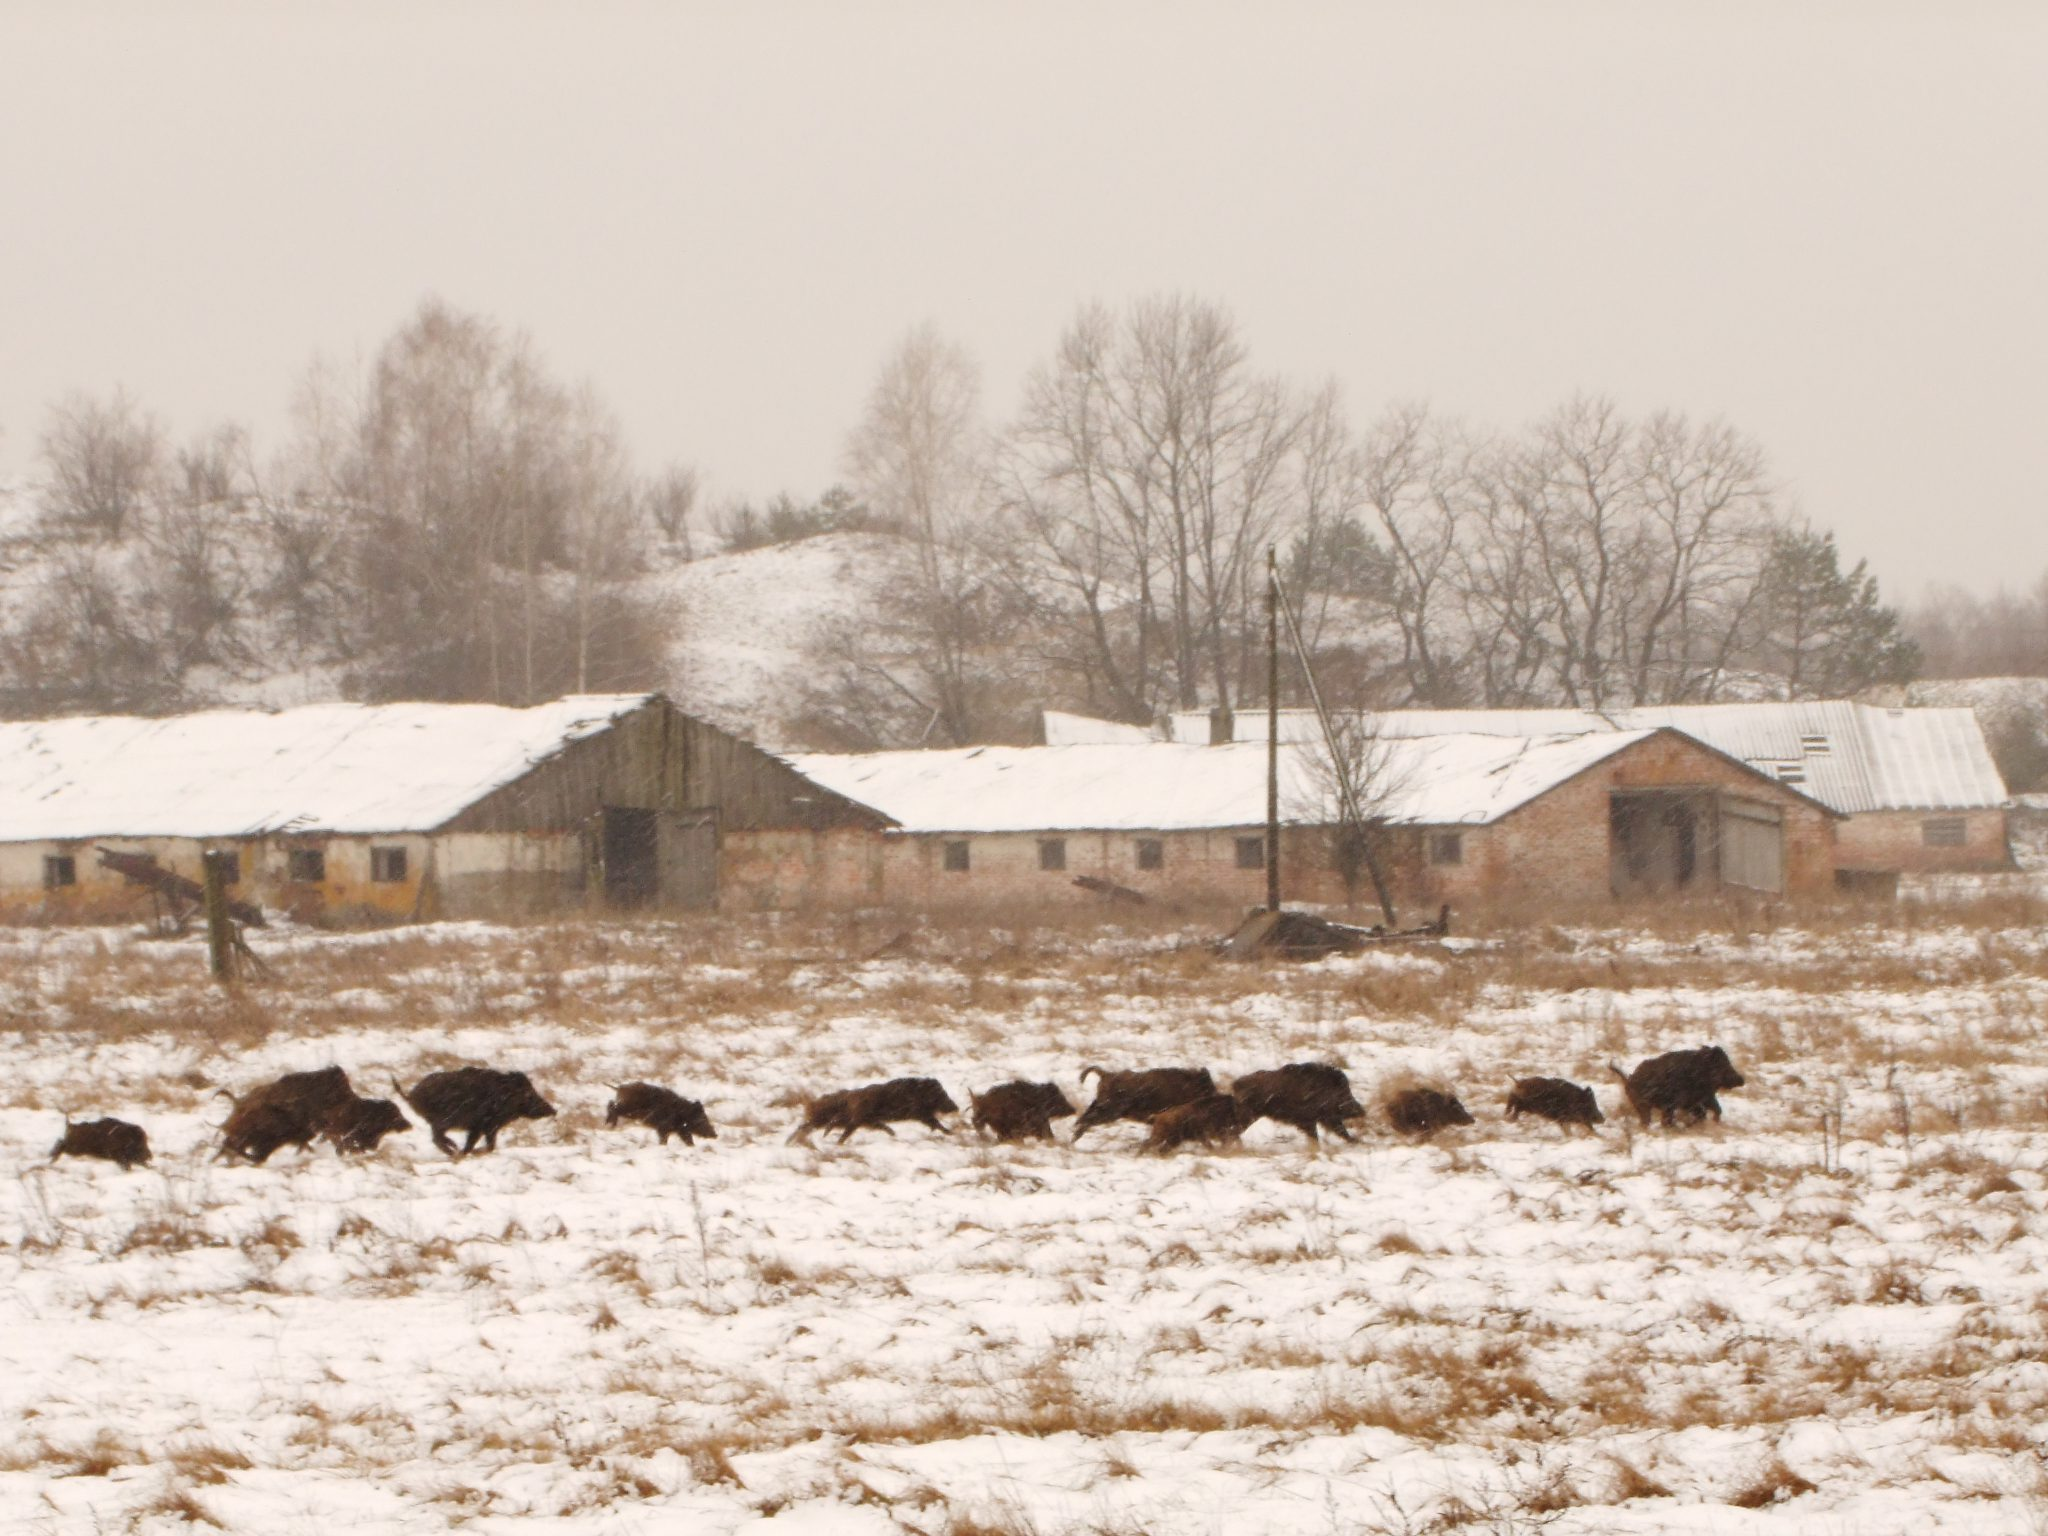 Tracking wildlife in Chernobyl: The emotional landscape of a disaster zone